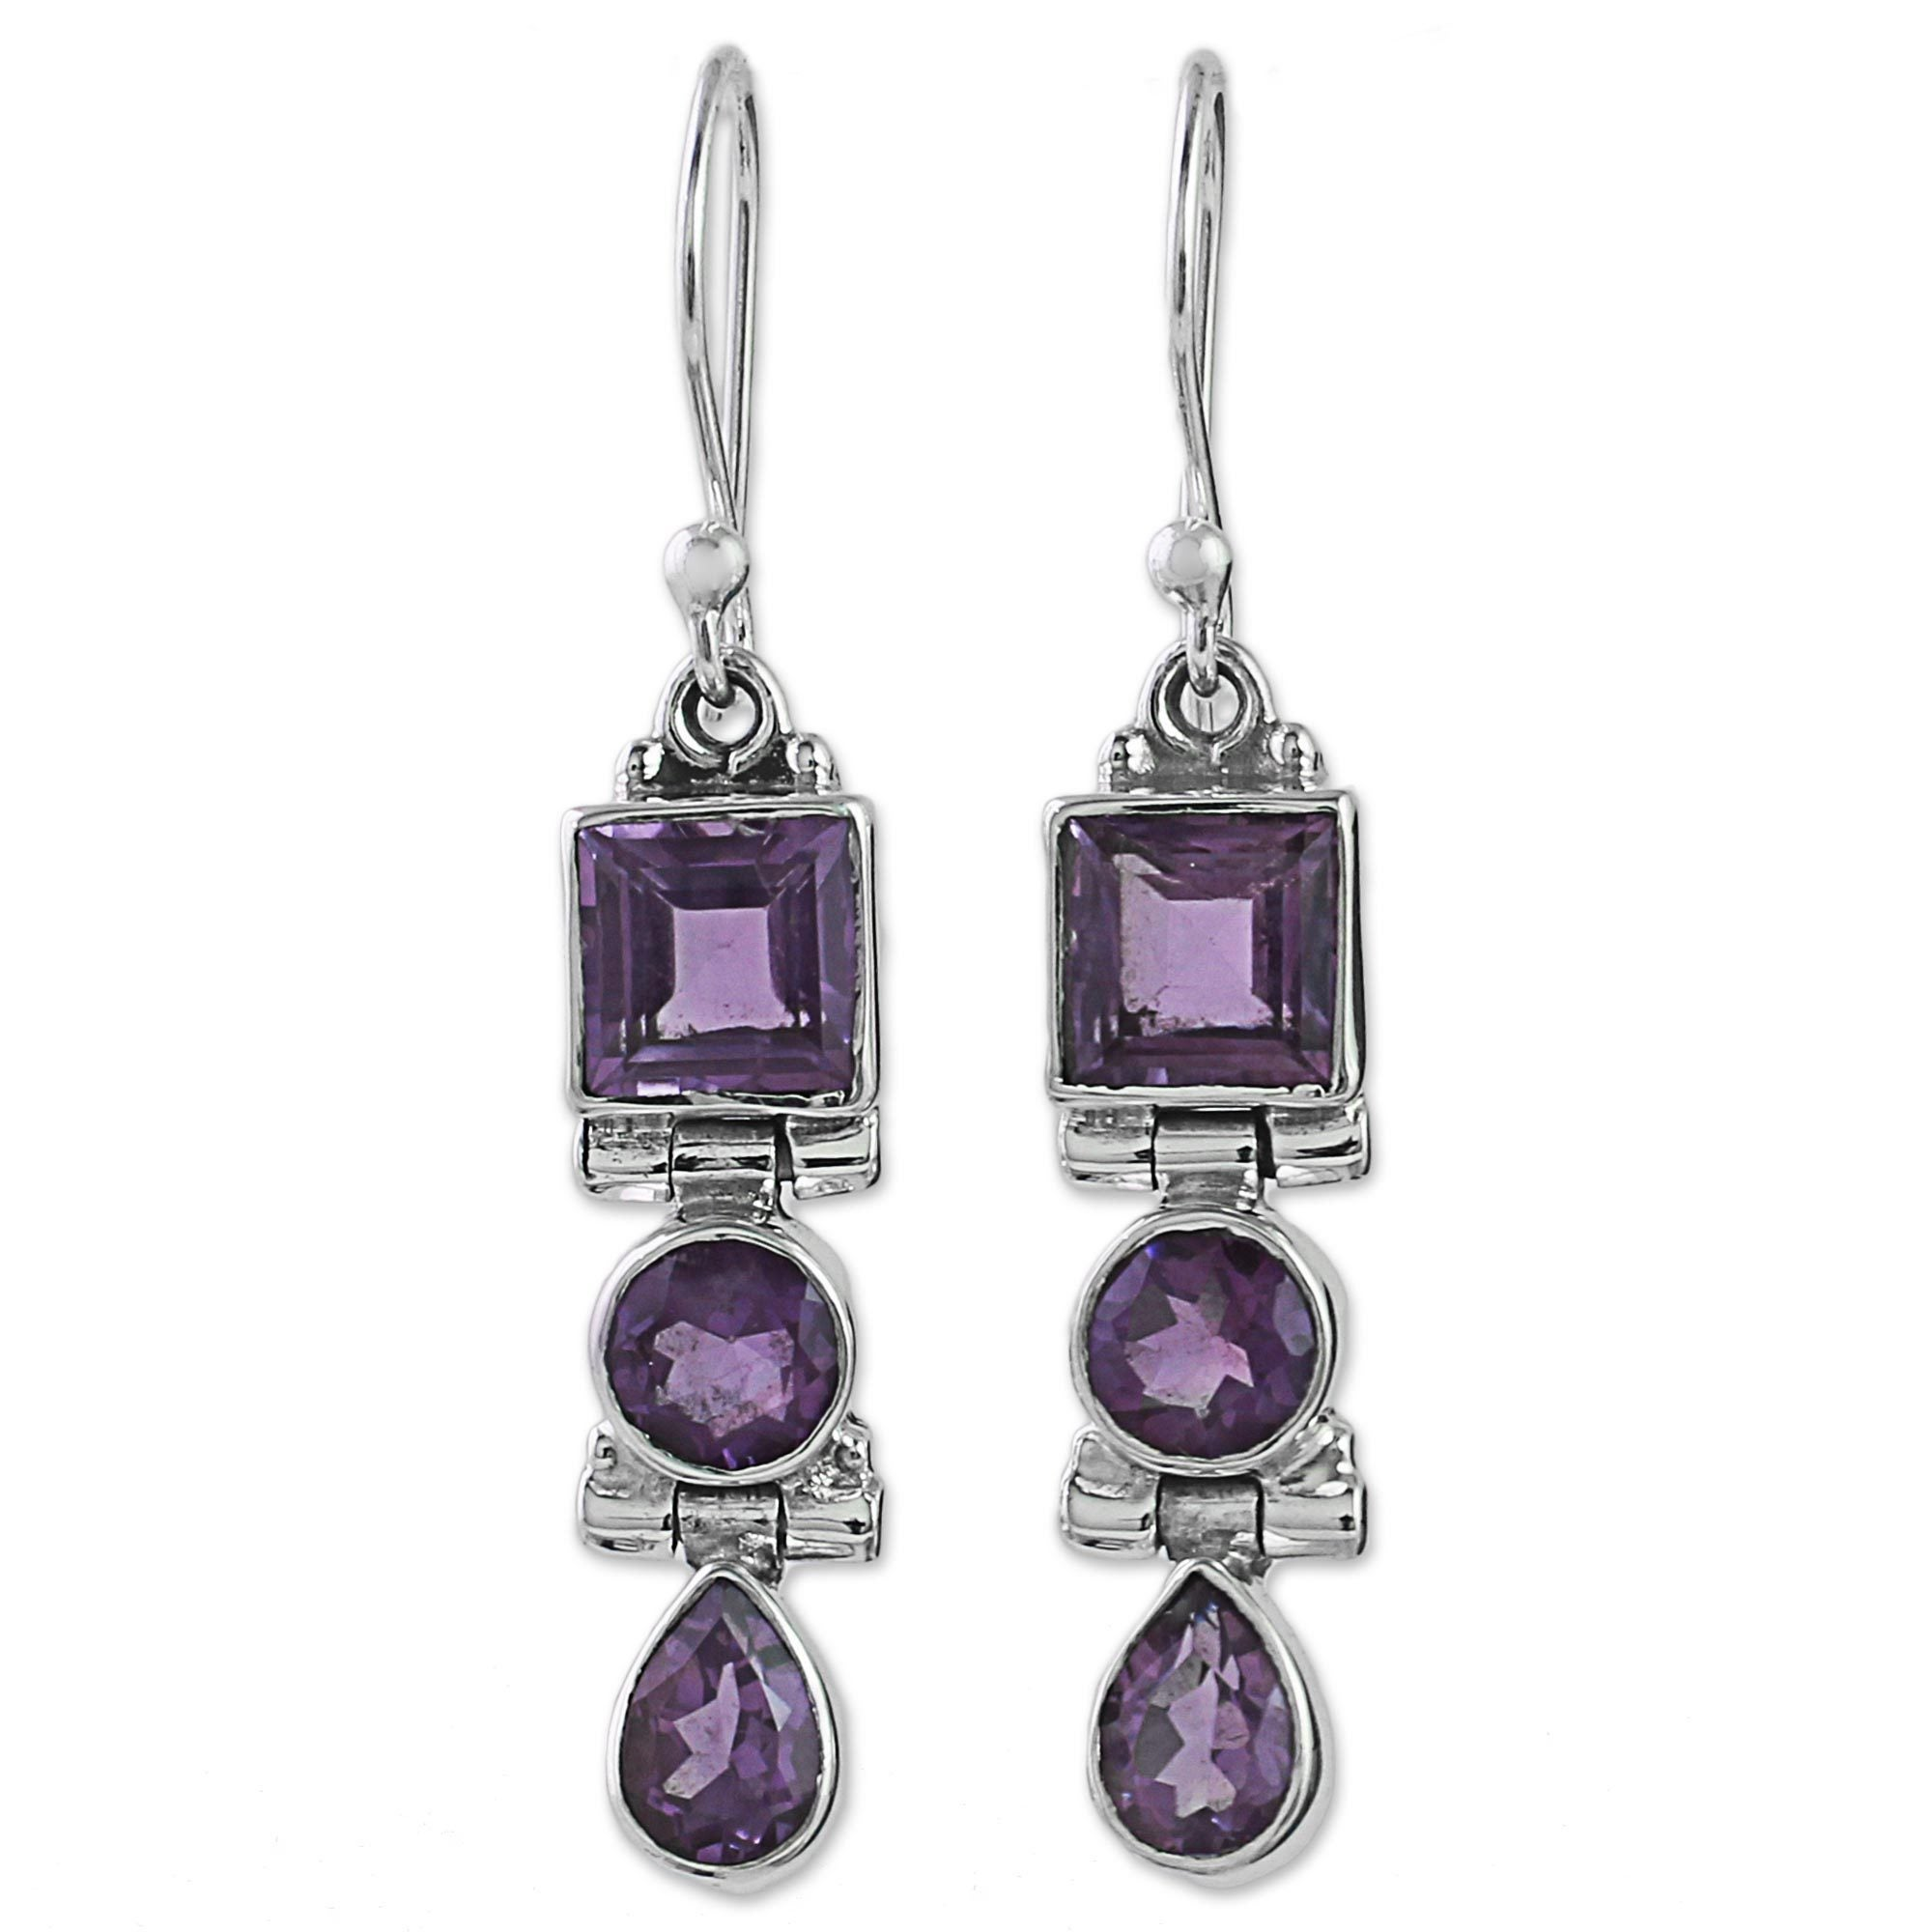 Handmade Sterling Silver Lavender Glamour Amethyst Earrings India On Free Shipping Today 12548601